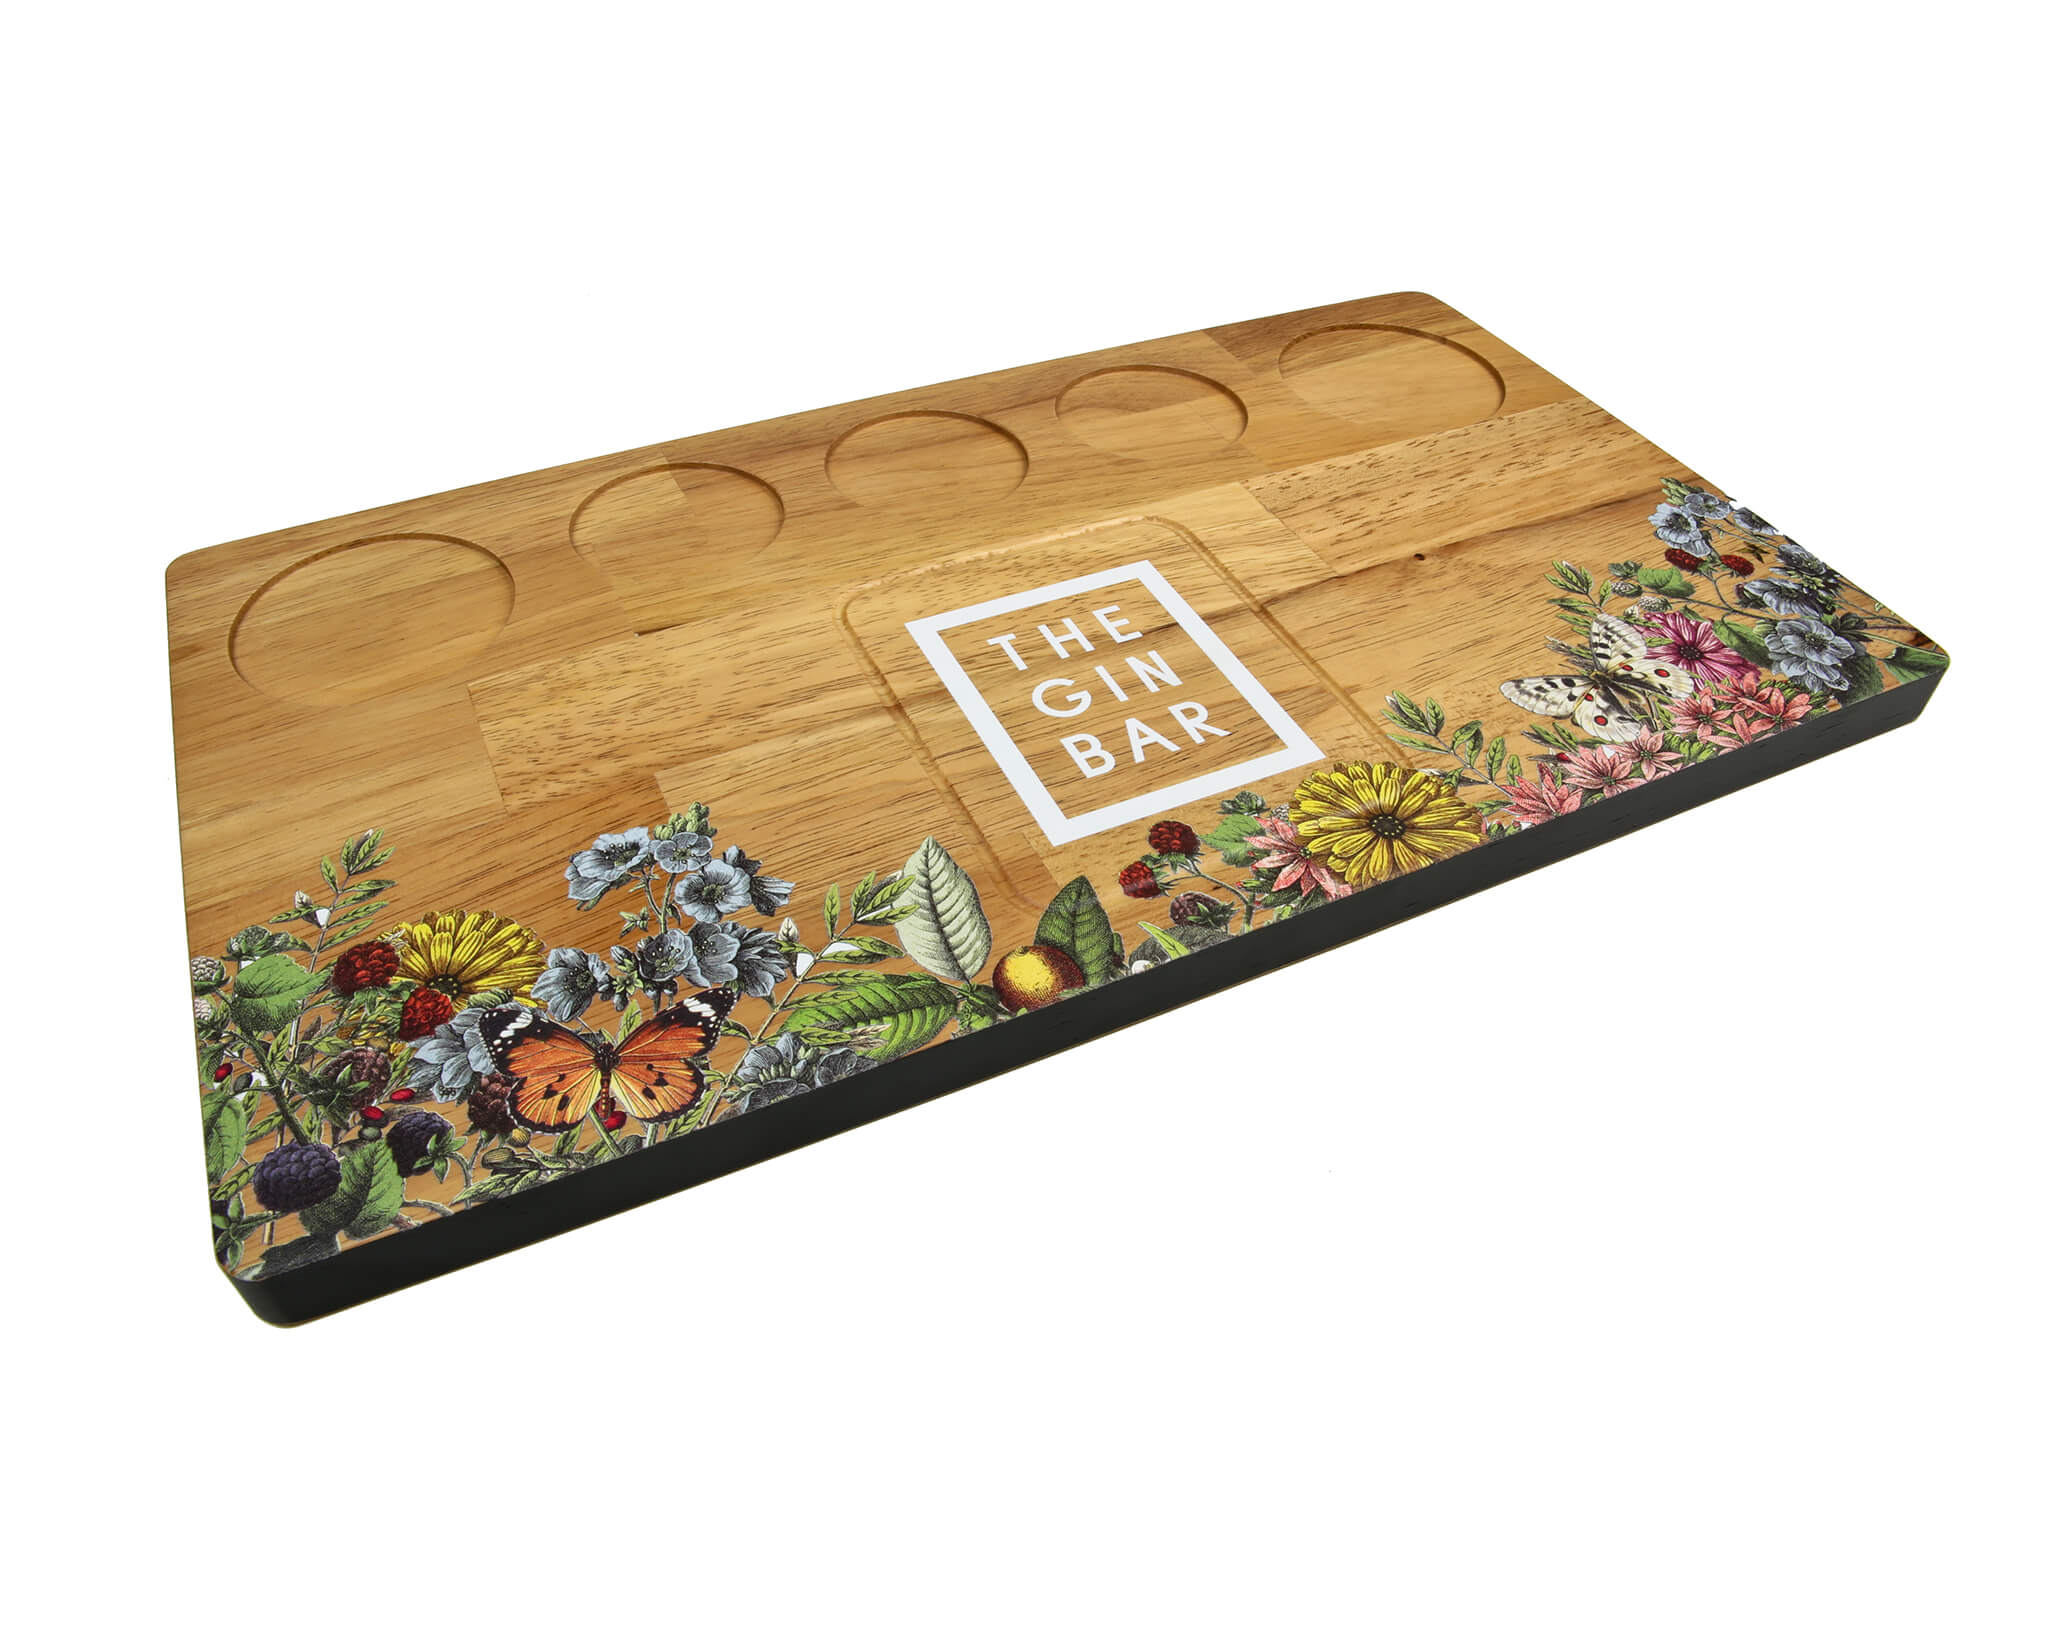 Promotional Gin board manufacturer